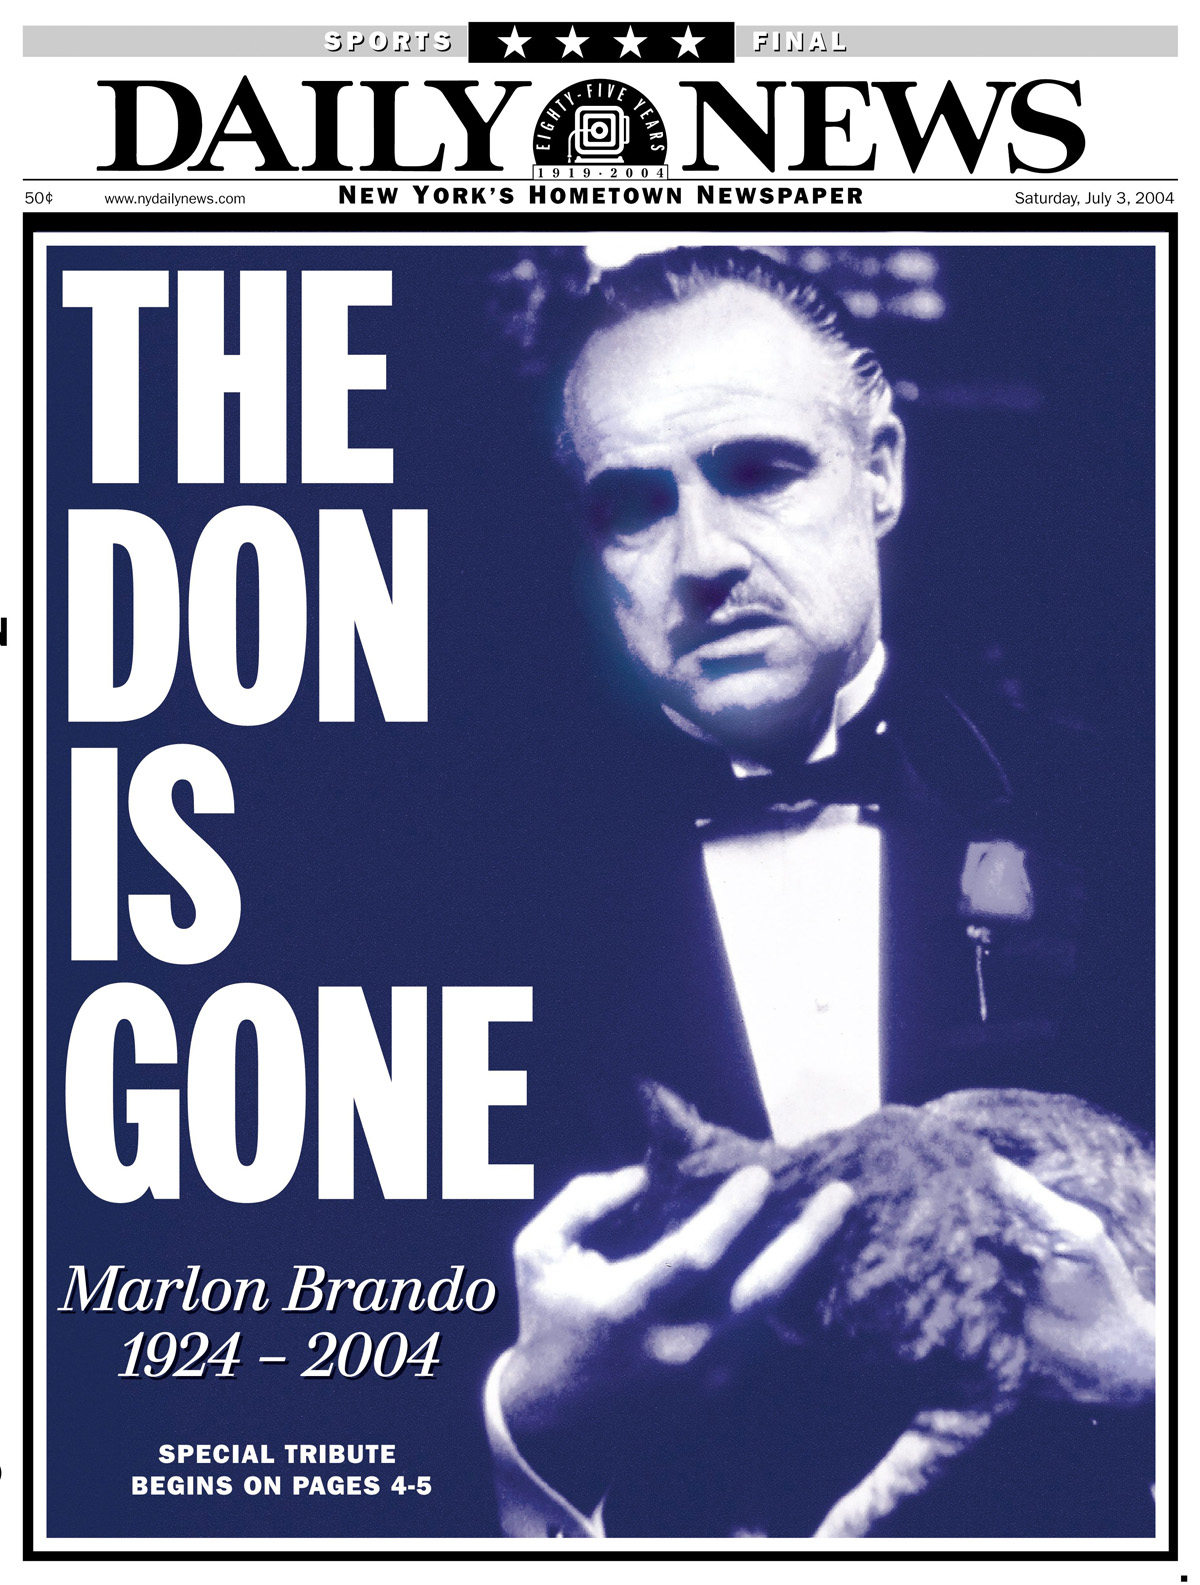 Marlon Brando's impact on the screen is remembered after his death ...